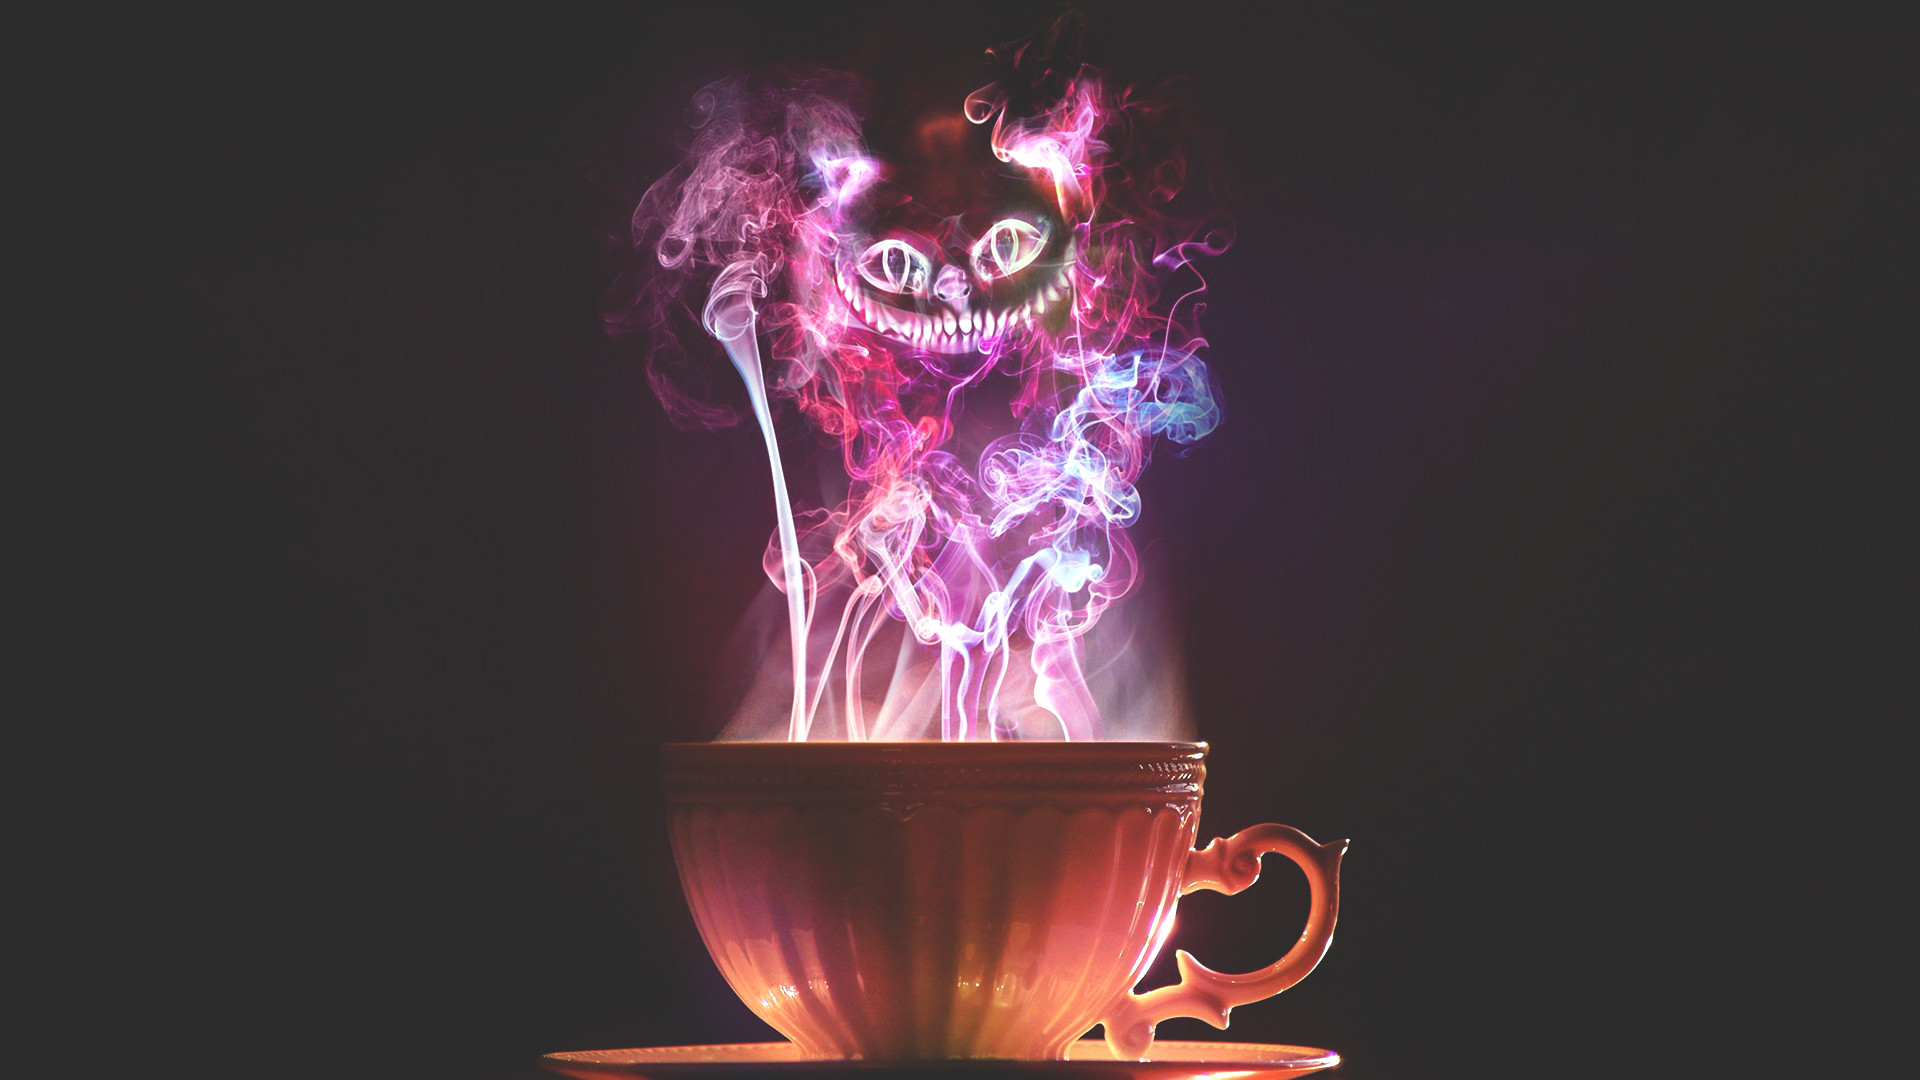 cup cheshire cat cup smoke cheshire cat Wallpaper 1920x1080   Hot 1920x1080